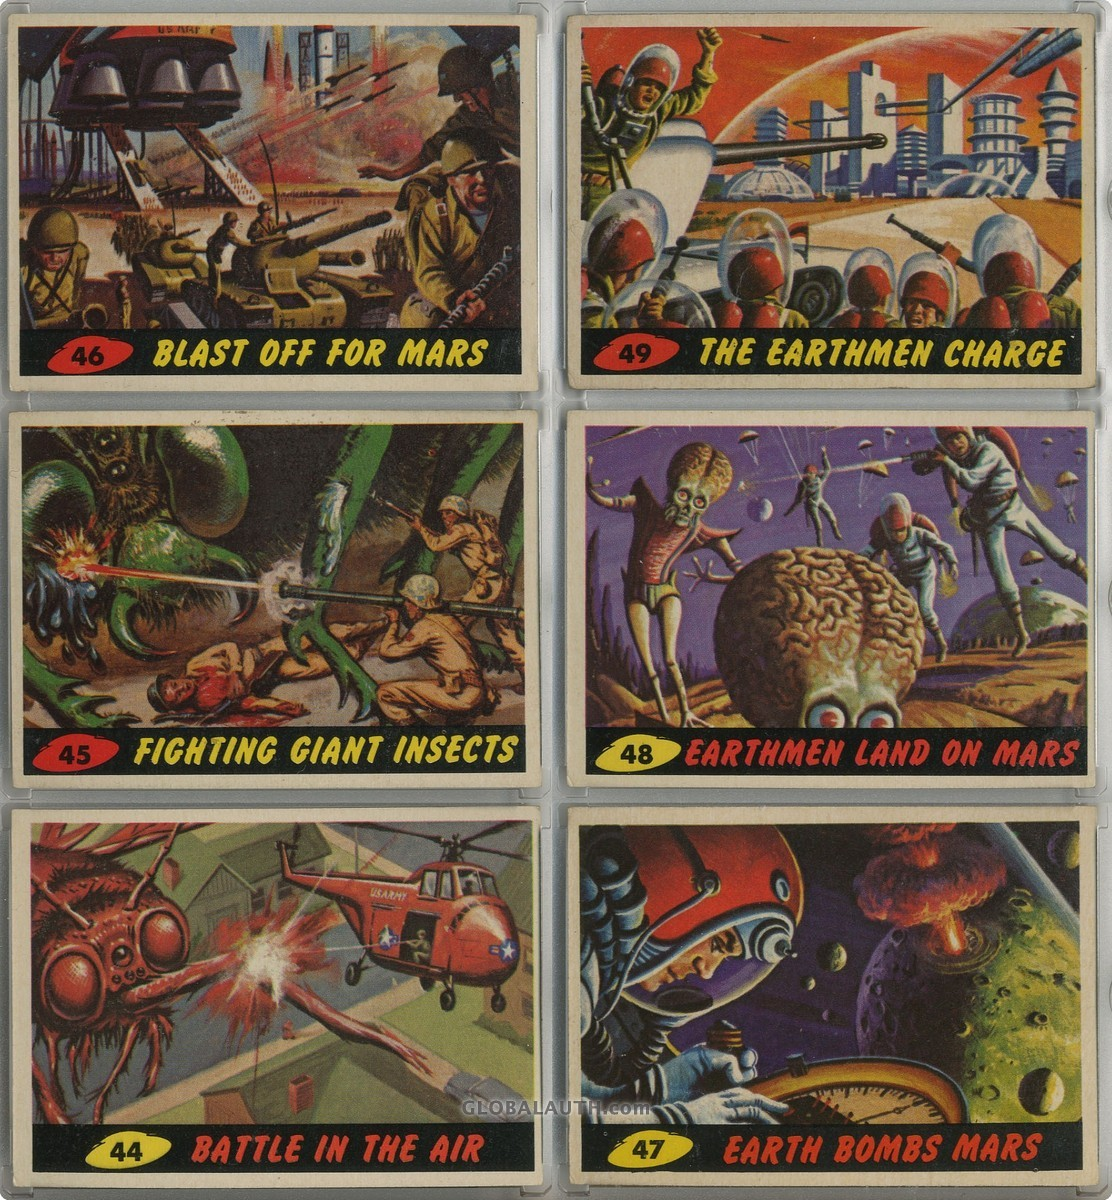 1962-mars-attacks-non-sports-card-set-front-image.jpg, #14